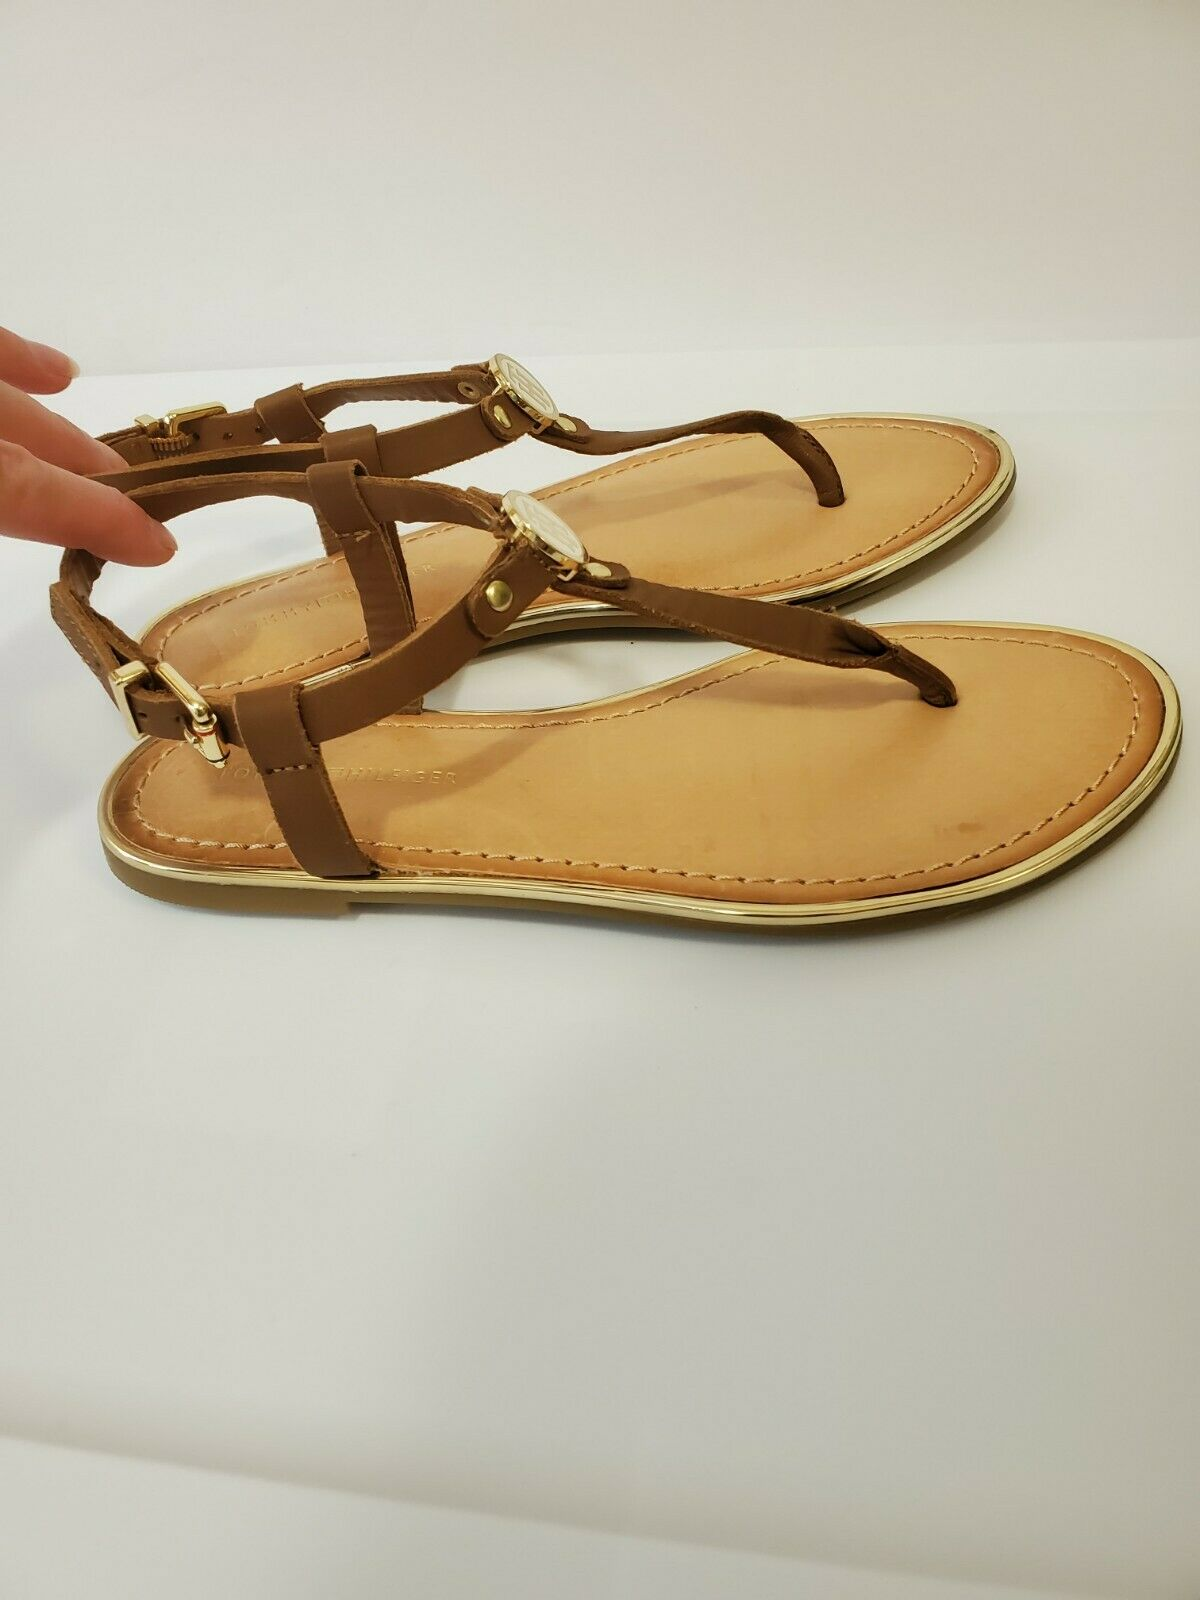 Tommy hilfiger women Brown Leather Sandals  - image 6